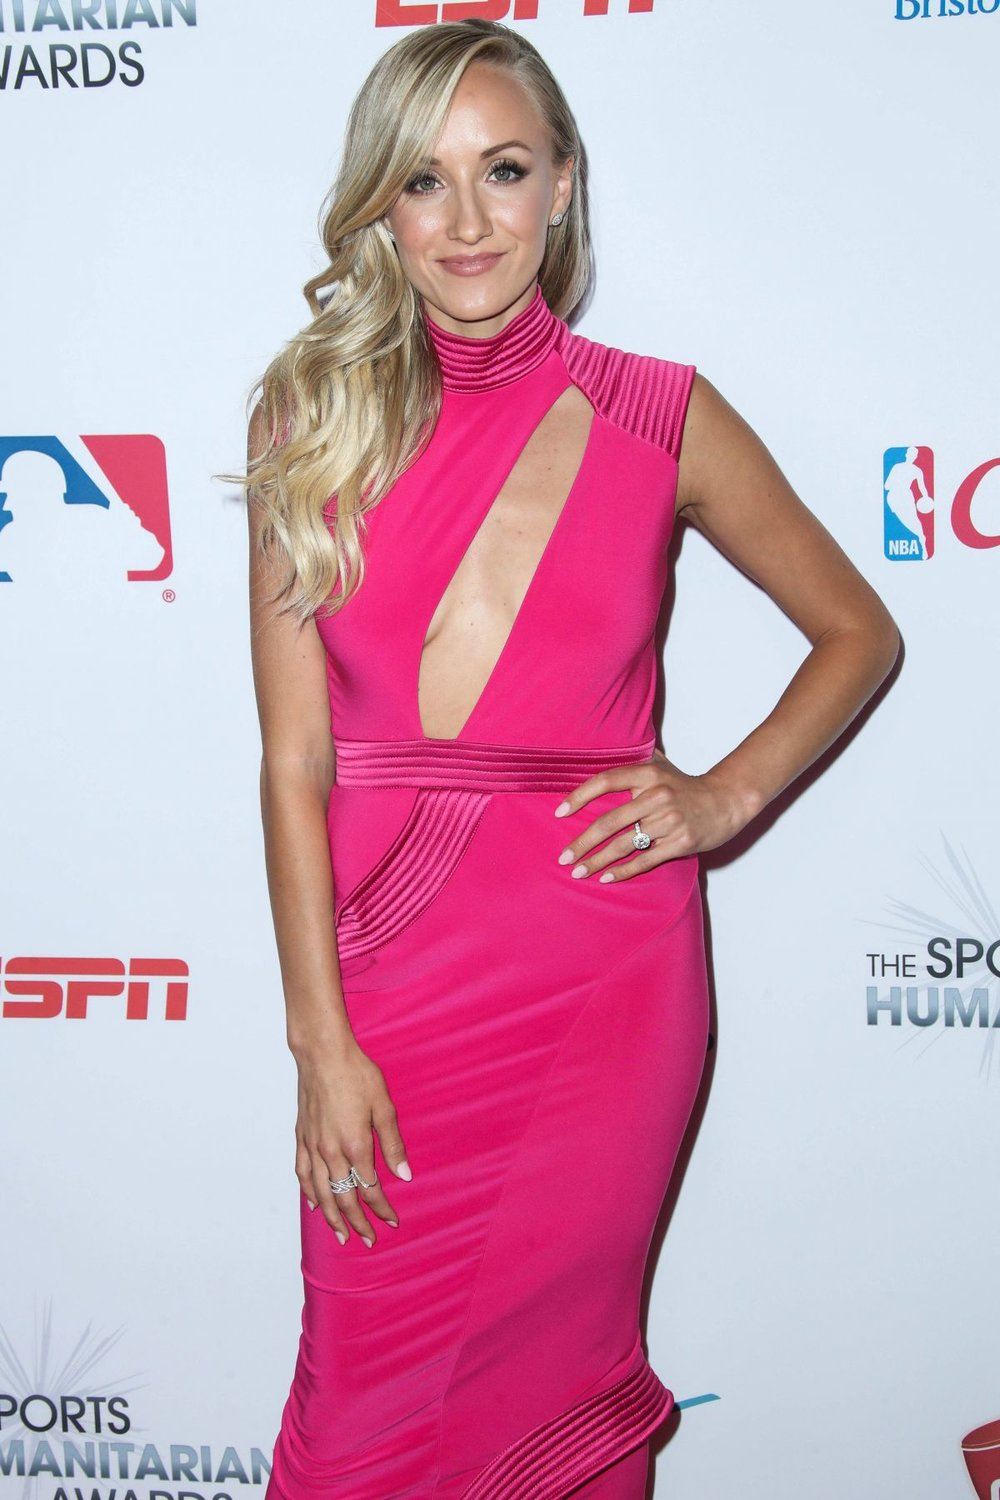 nastia-liukin-at-3rd-annual-sports-humanitarian-of-the-year-awards-in-los-angeles-07-11-2017_1.jpg